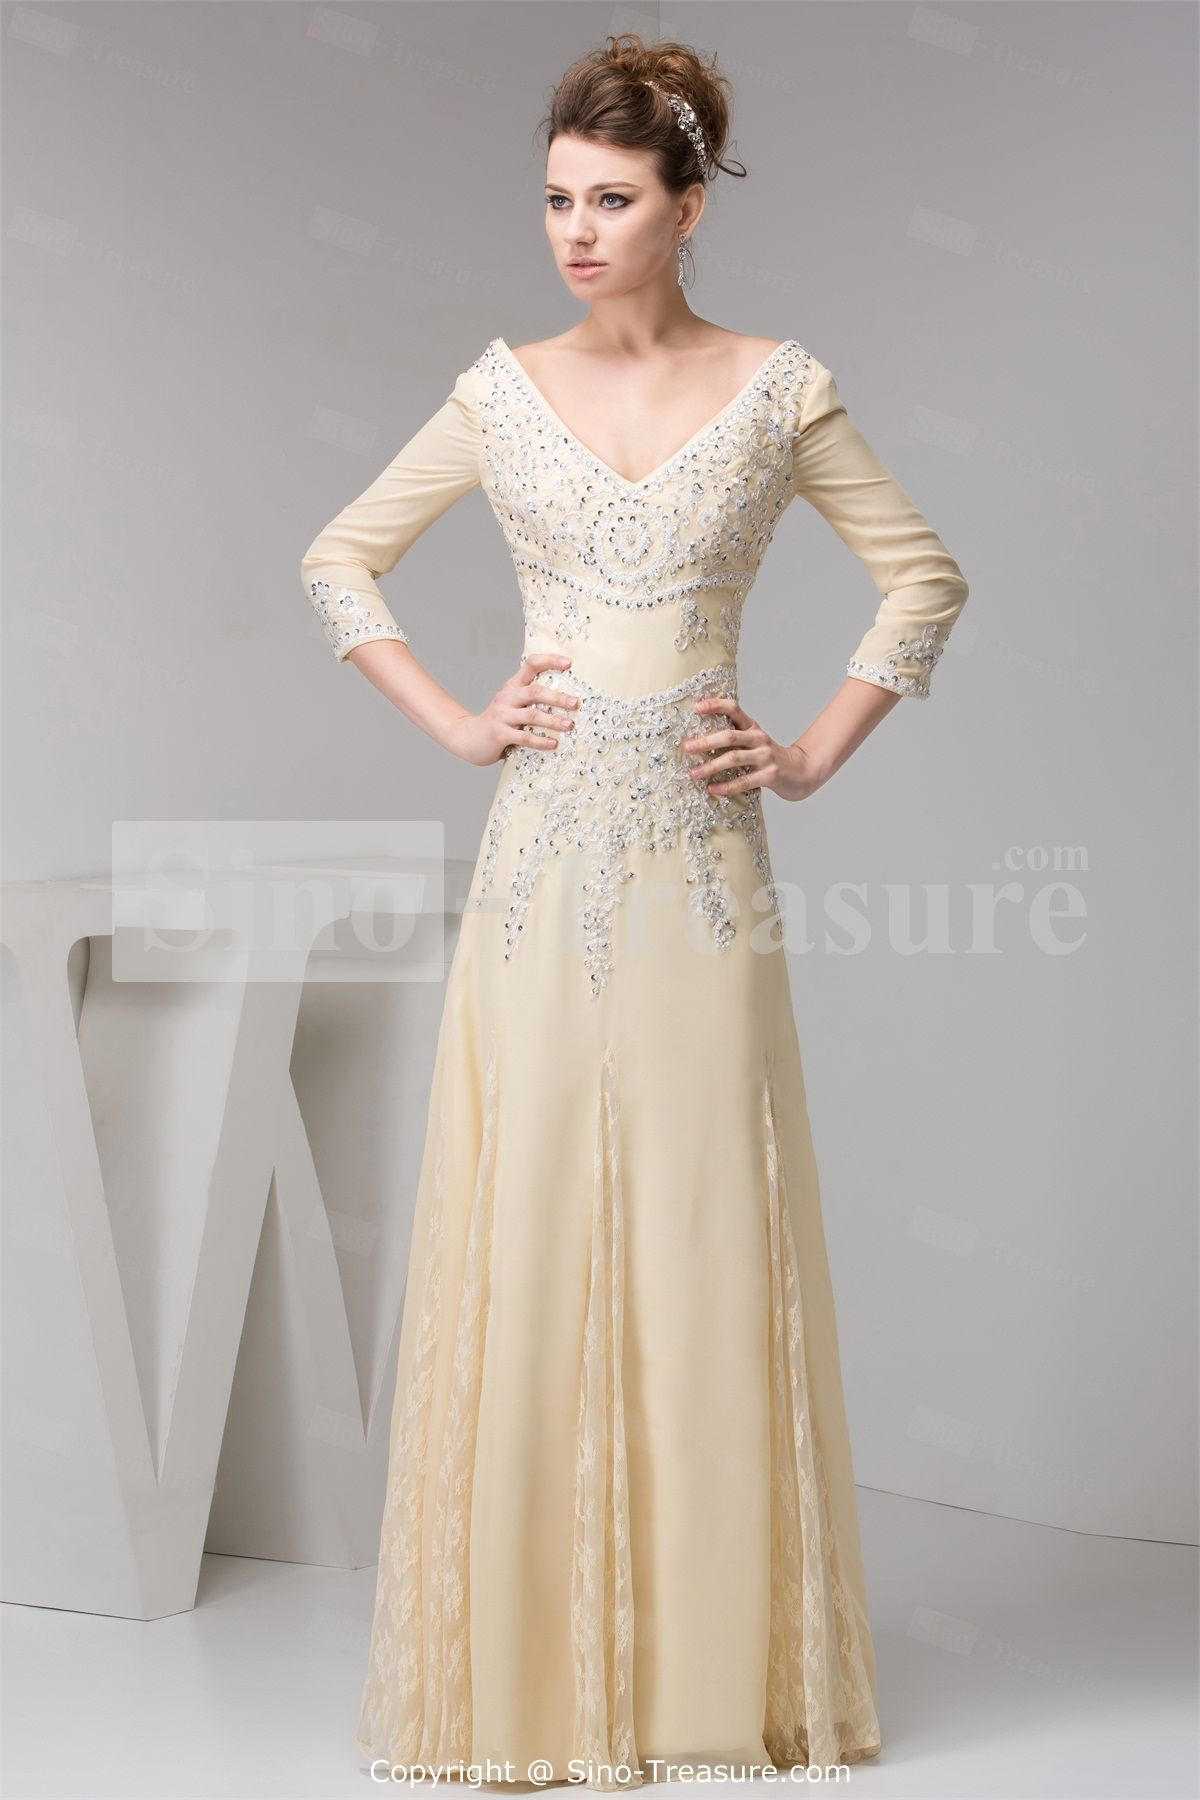 Gorgeous Sheath Column V Neck Long Sleeve Wedding Dresses : Sleeves long sleeve evening dresses gowns dress